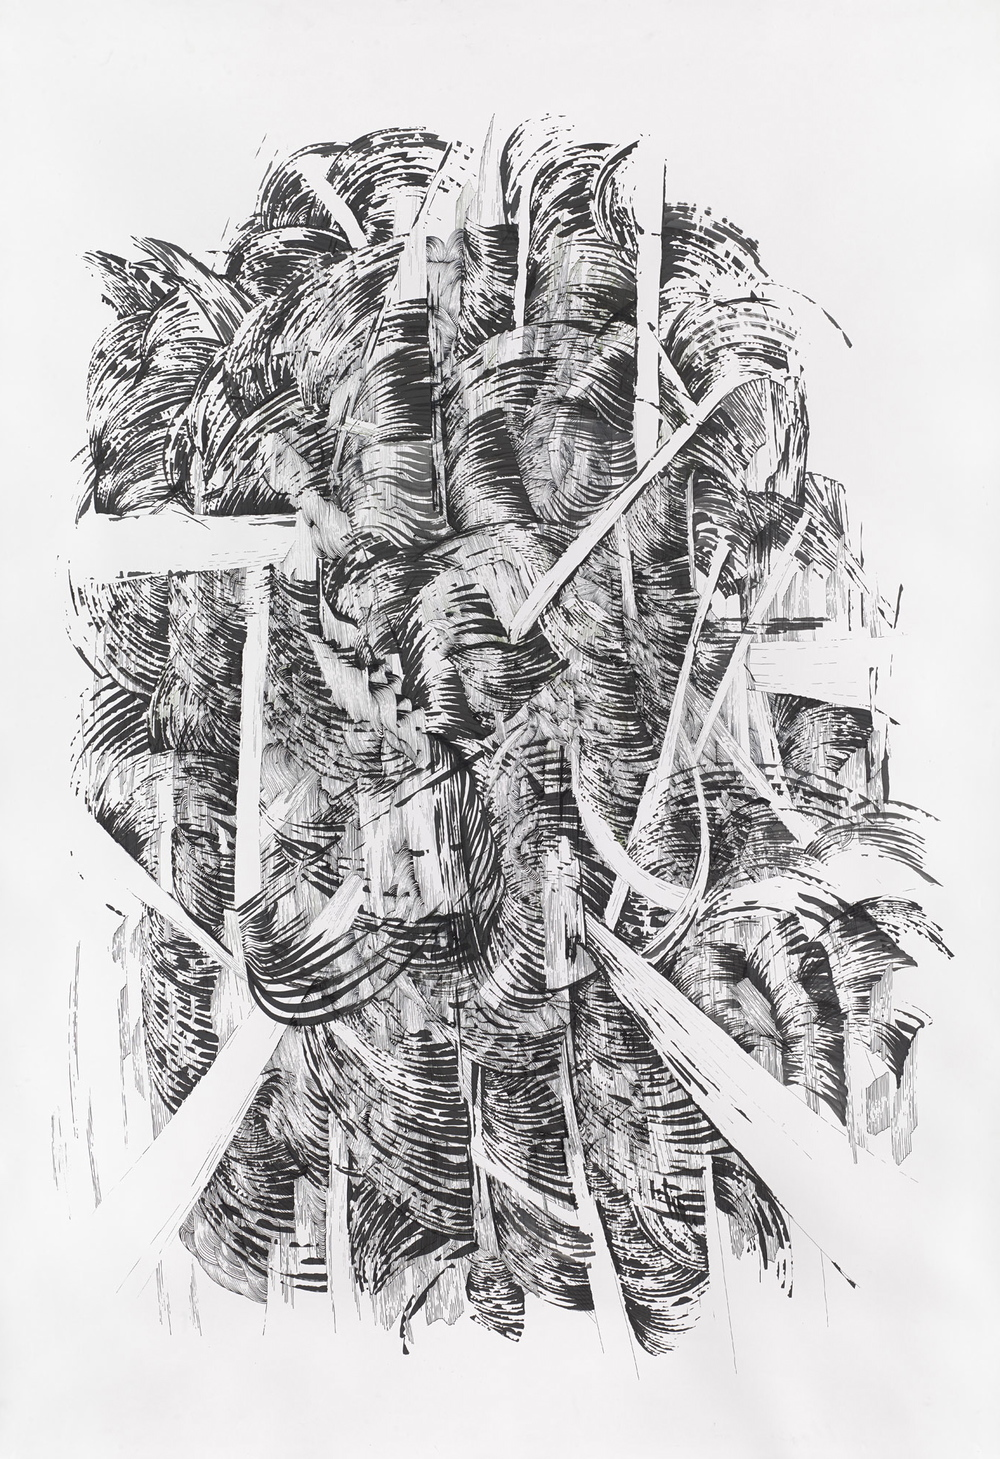 BK P164 1 | untitled | ink on paper | 200x150cm | 2014 | privat collection stuttgart